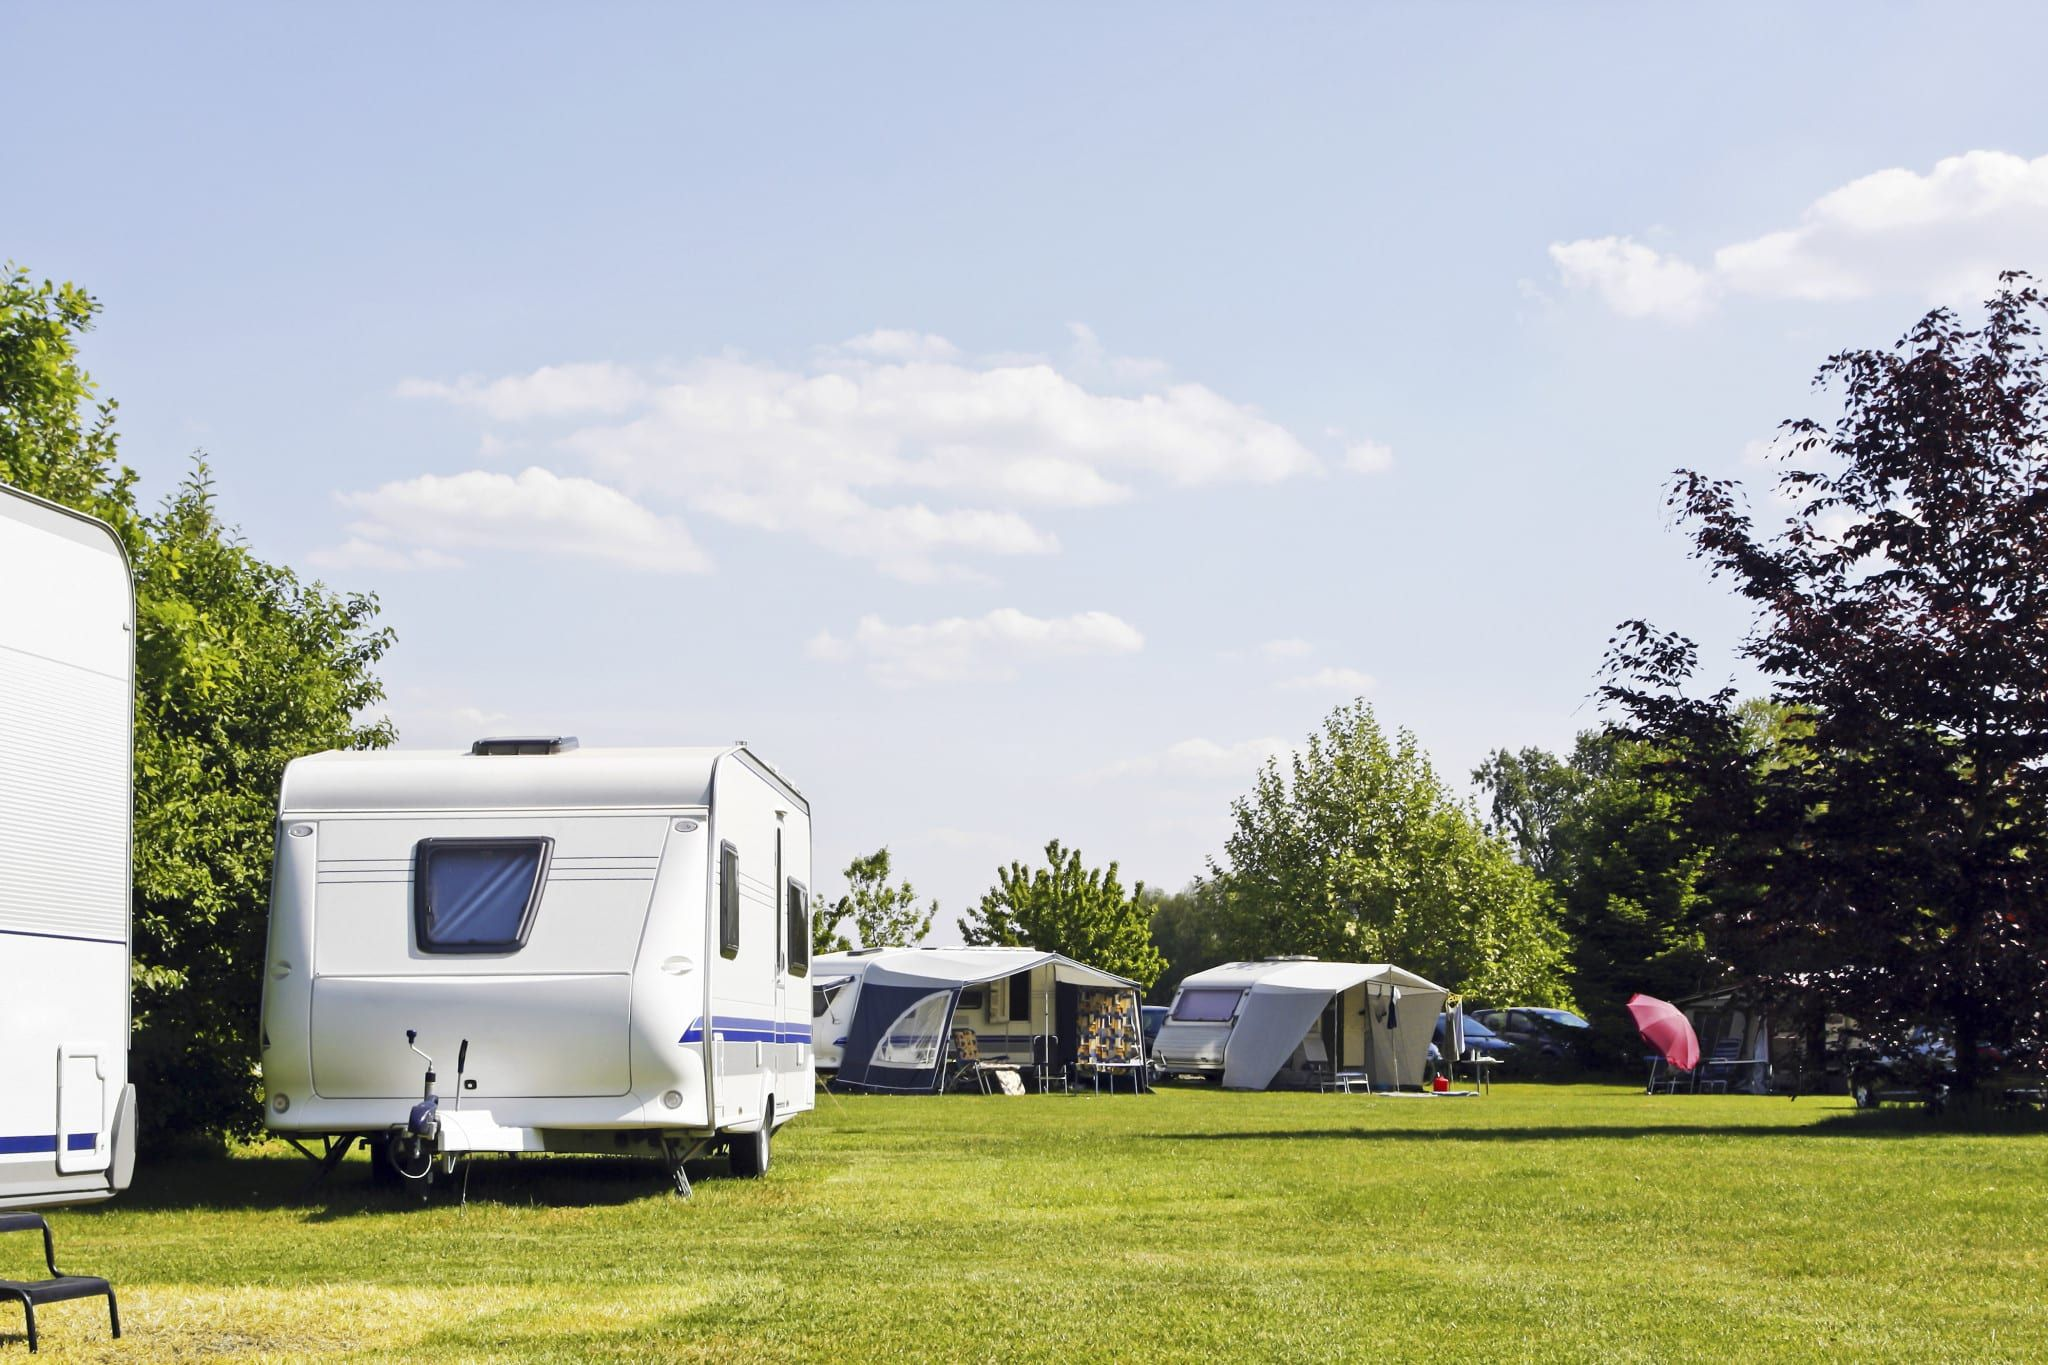 How To Stay Safe While Camping in 2020